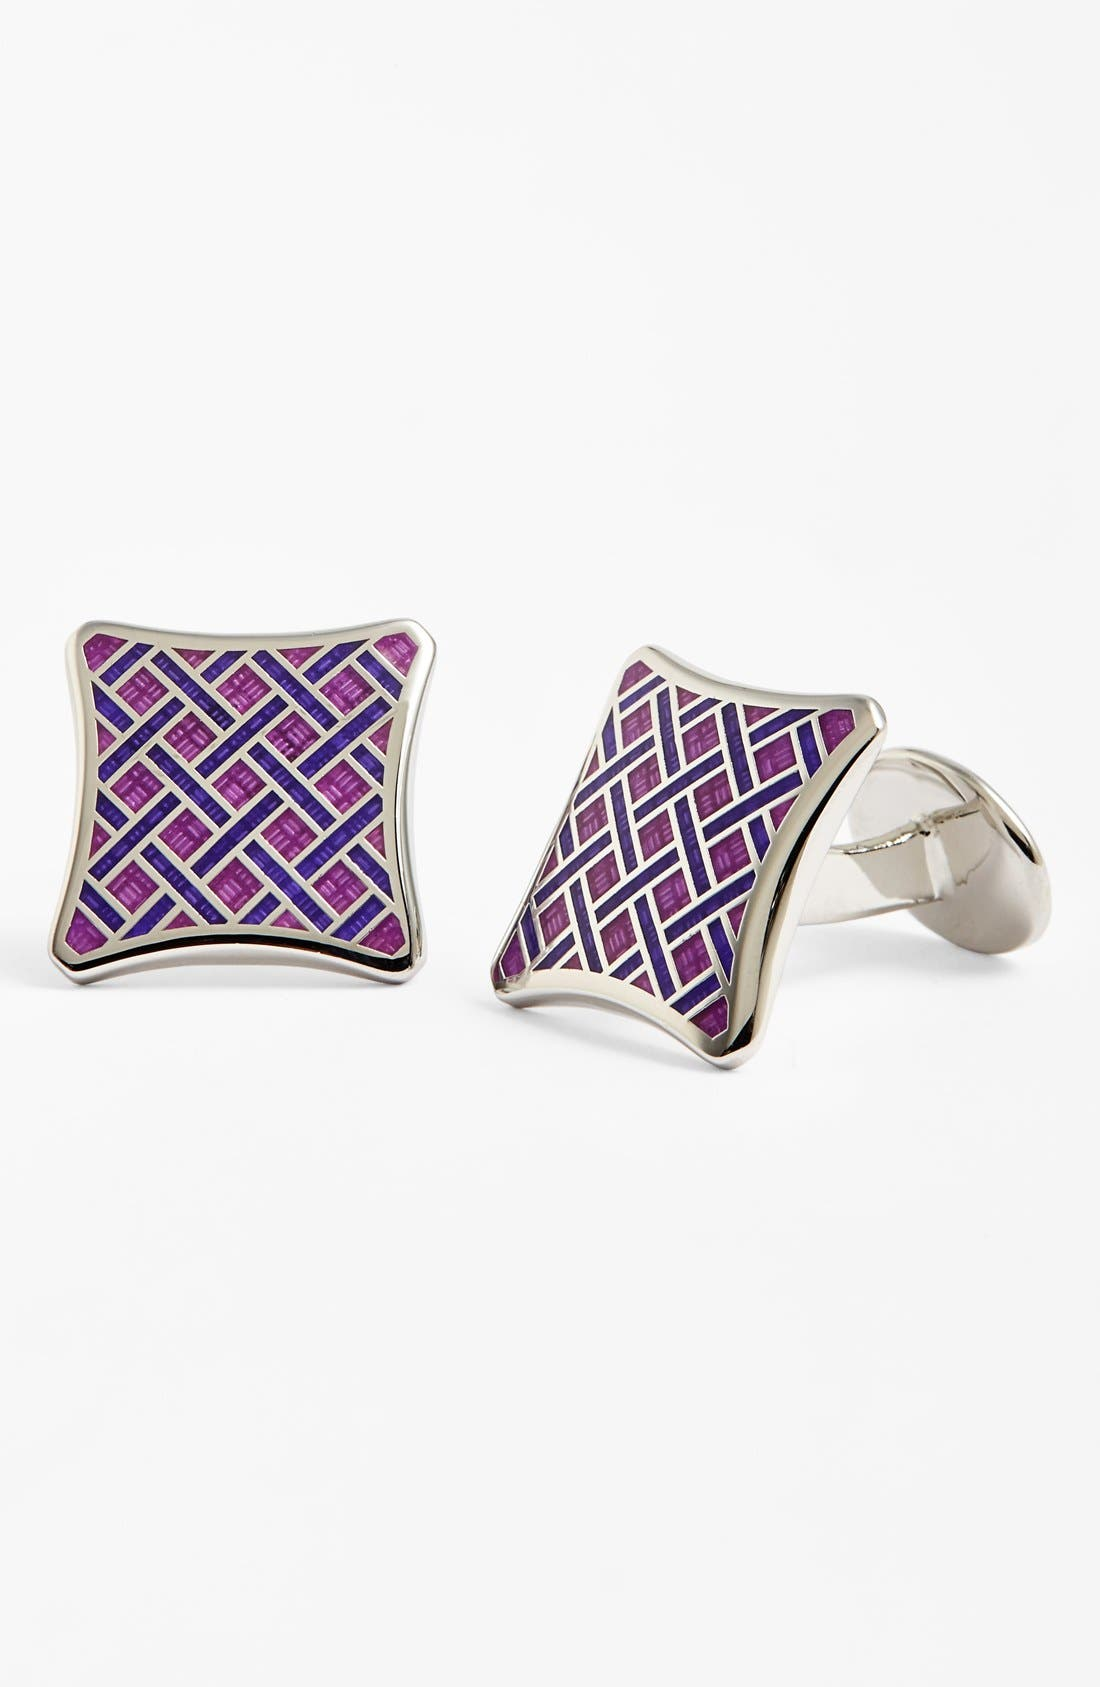 Sterling Silver Basketweave Cuff Links,                             Main thumbnail 1, color,                             040